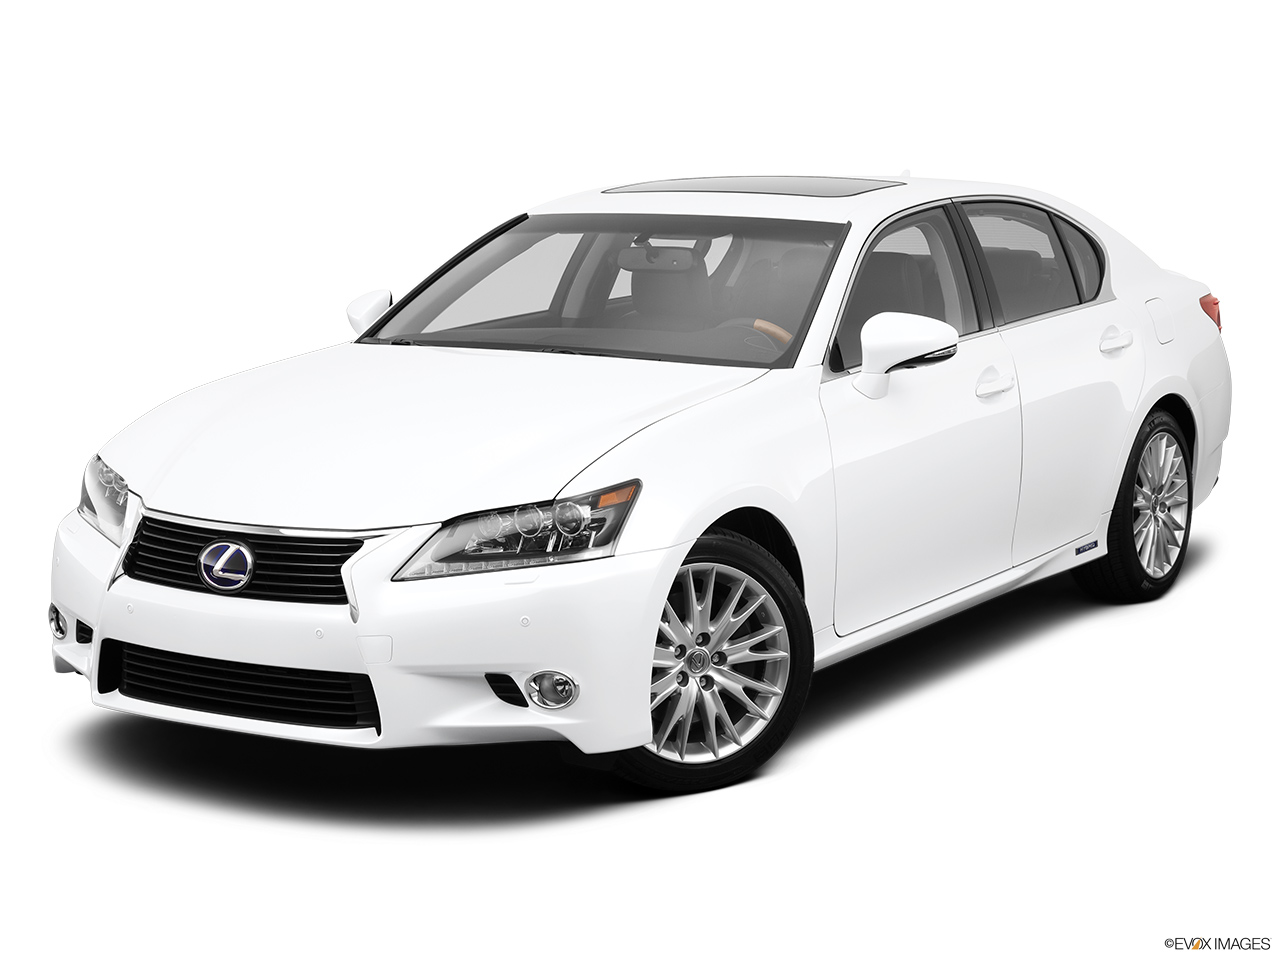 2014 lexus gs 450h sedan hybrid. Black Bedroom Furniture Sets. Home Design Ideas